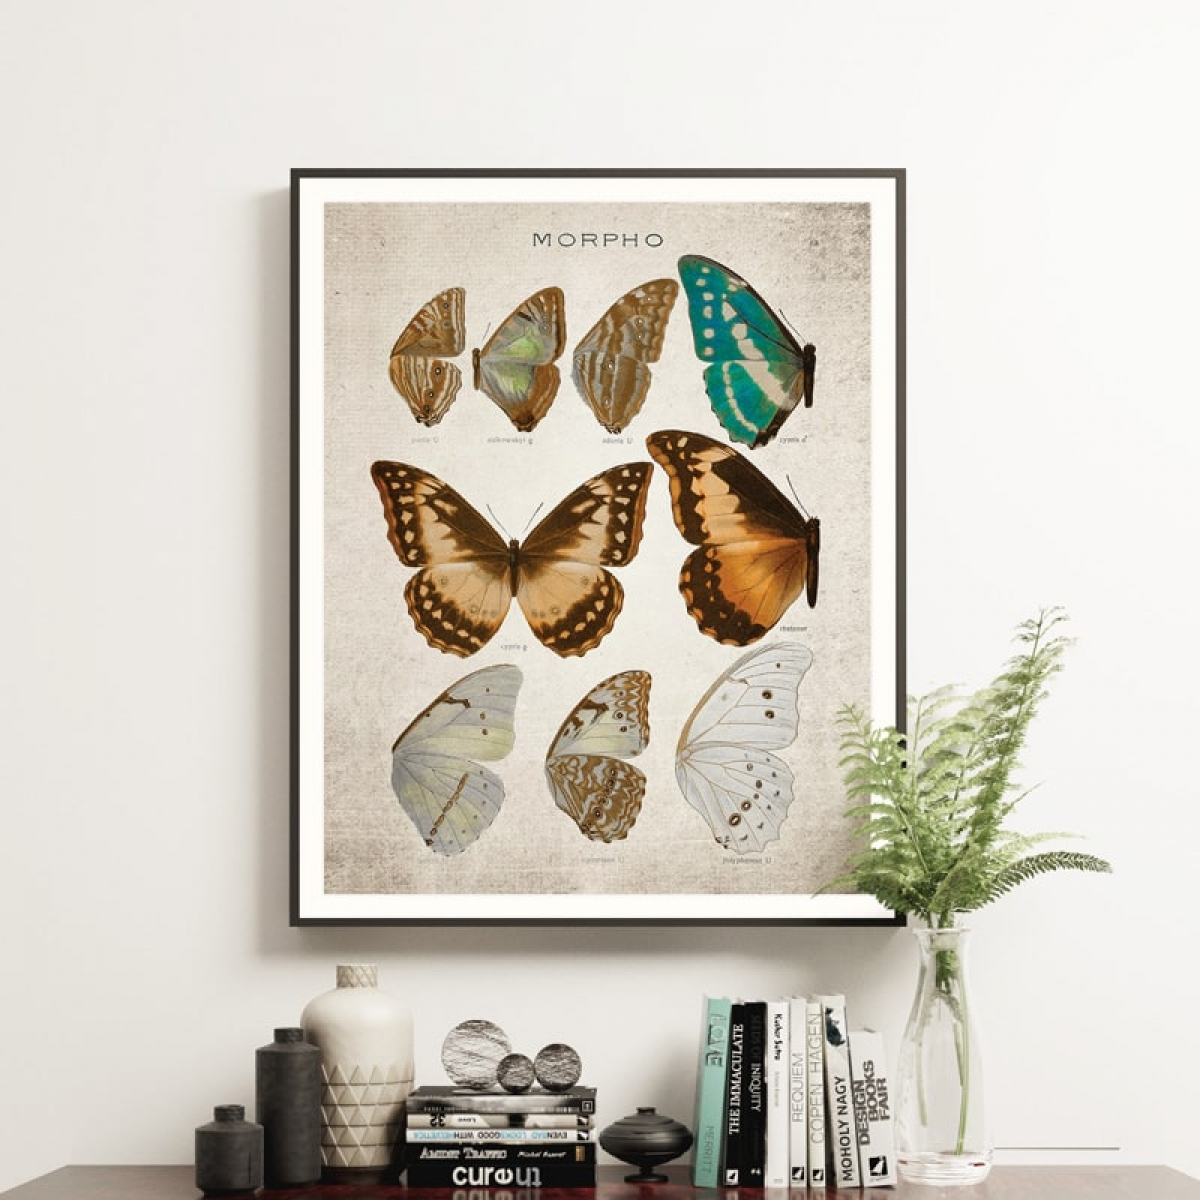 Minibeast Vintage Entomology Giclee Print (Morpho Collection 1 Plate From 1867)